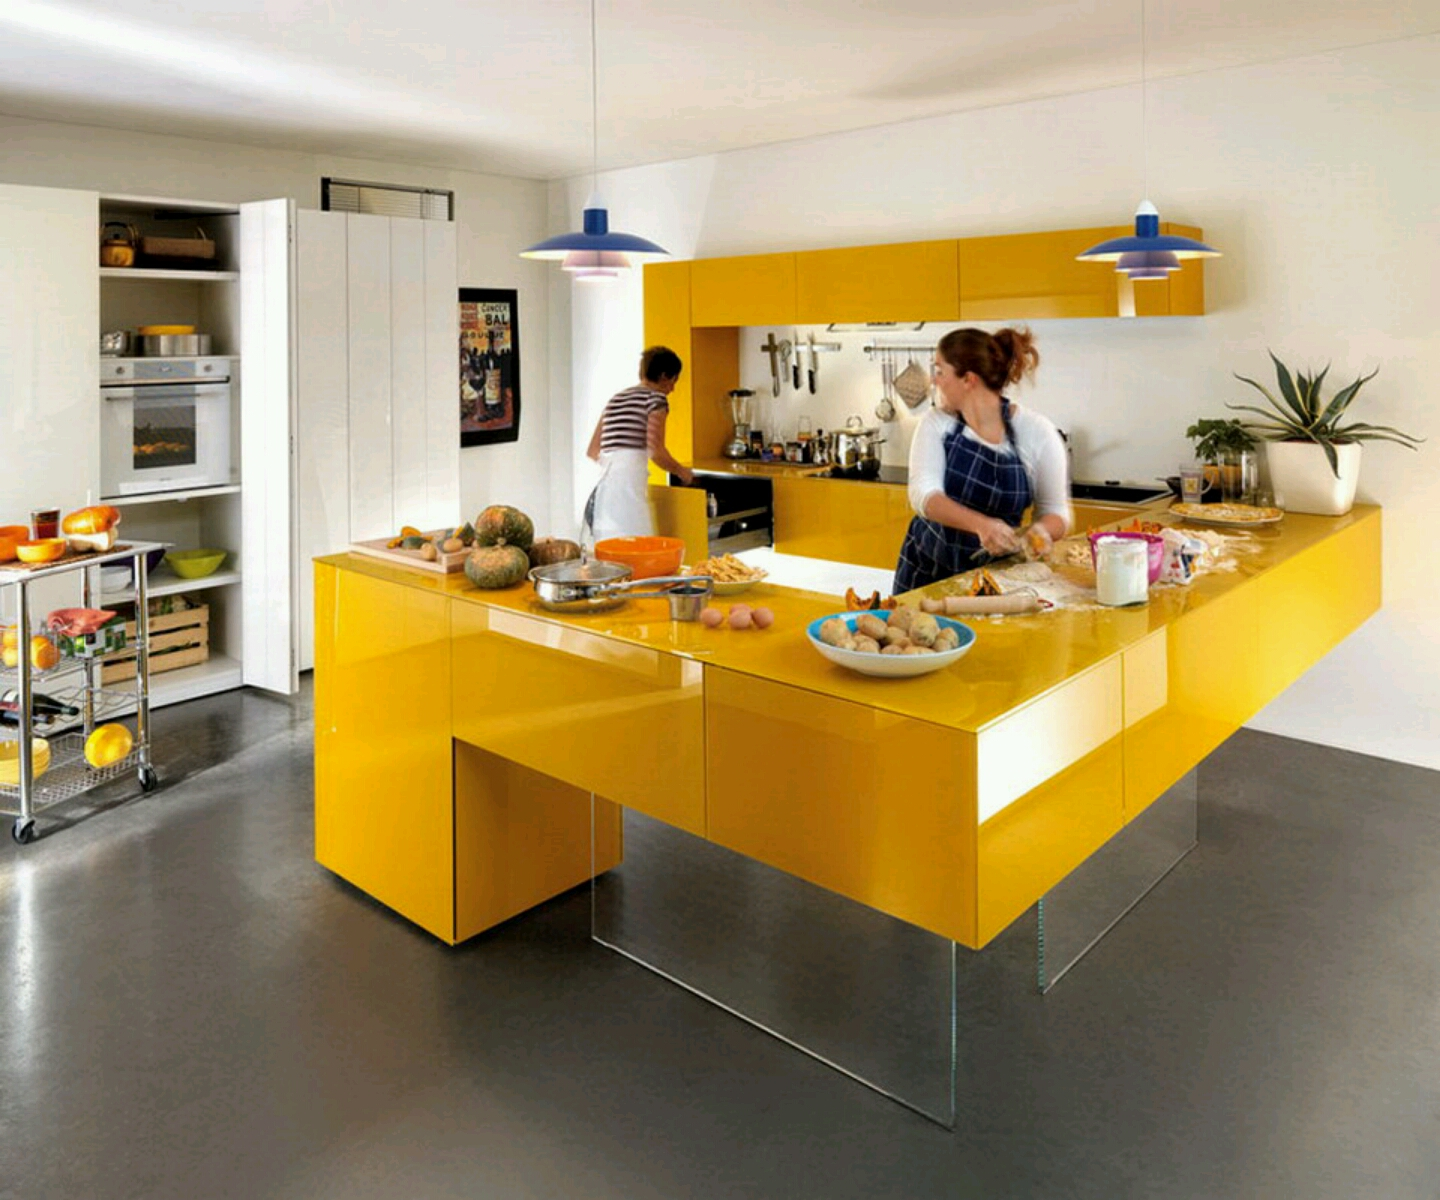 Modern kitchen cabinets designs ideas furniture gallery for Modern kitchen furniture